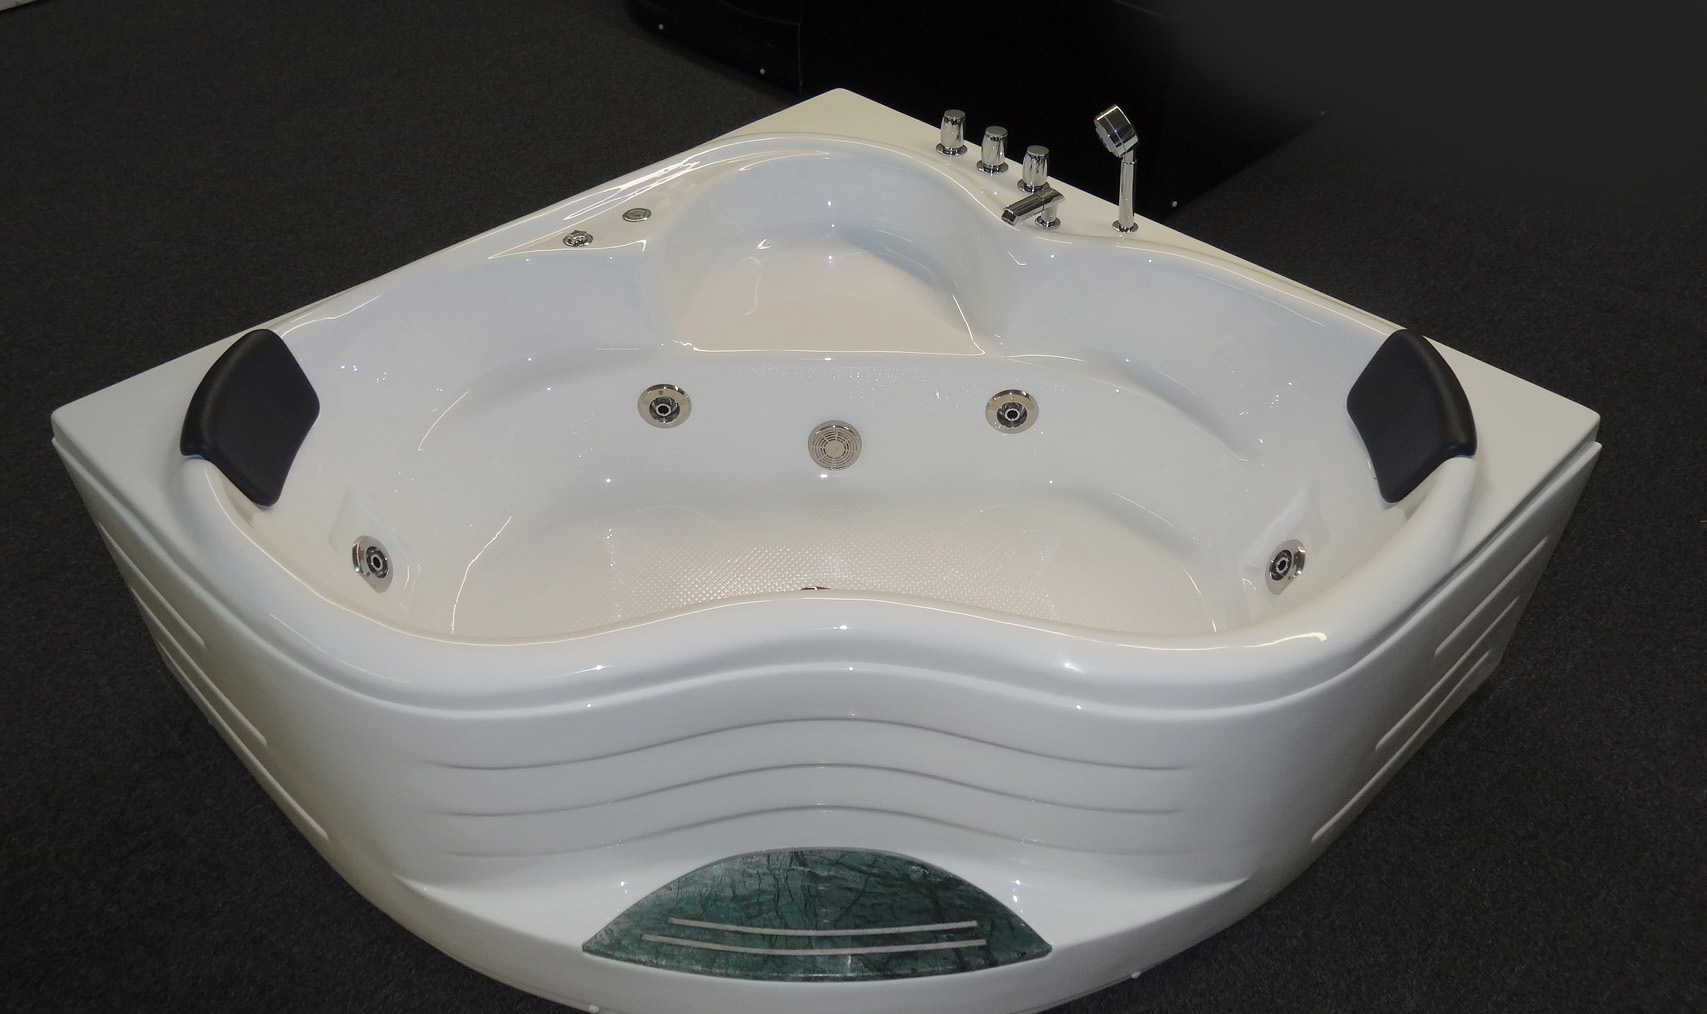 Jetted bathtub free aquatica pamela wht spa jetted for Whirlpool tubs on sale